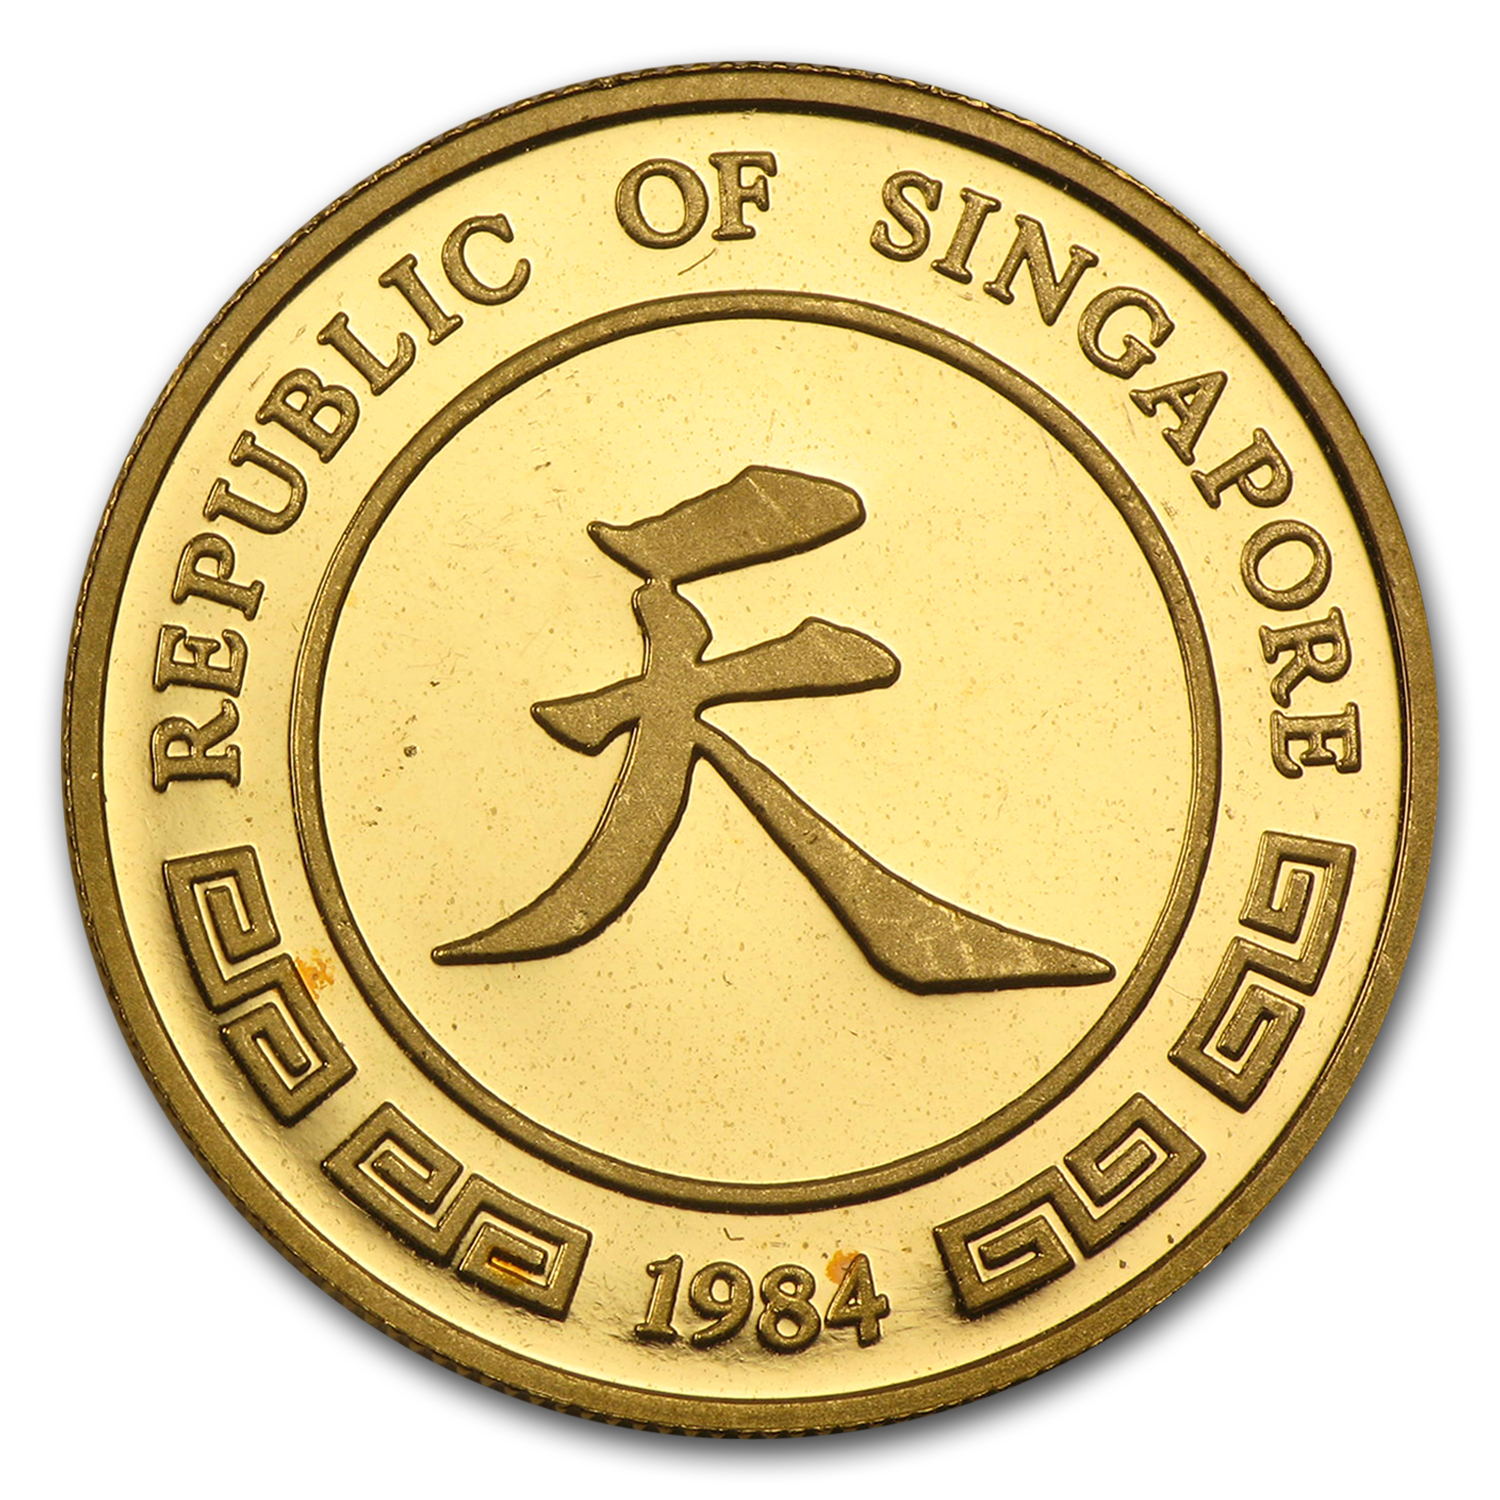 Singapore 1984 - 25 Singold 1/4 oz Gold (Year of the Rat)